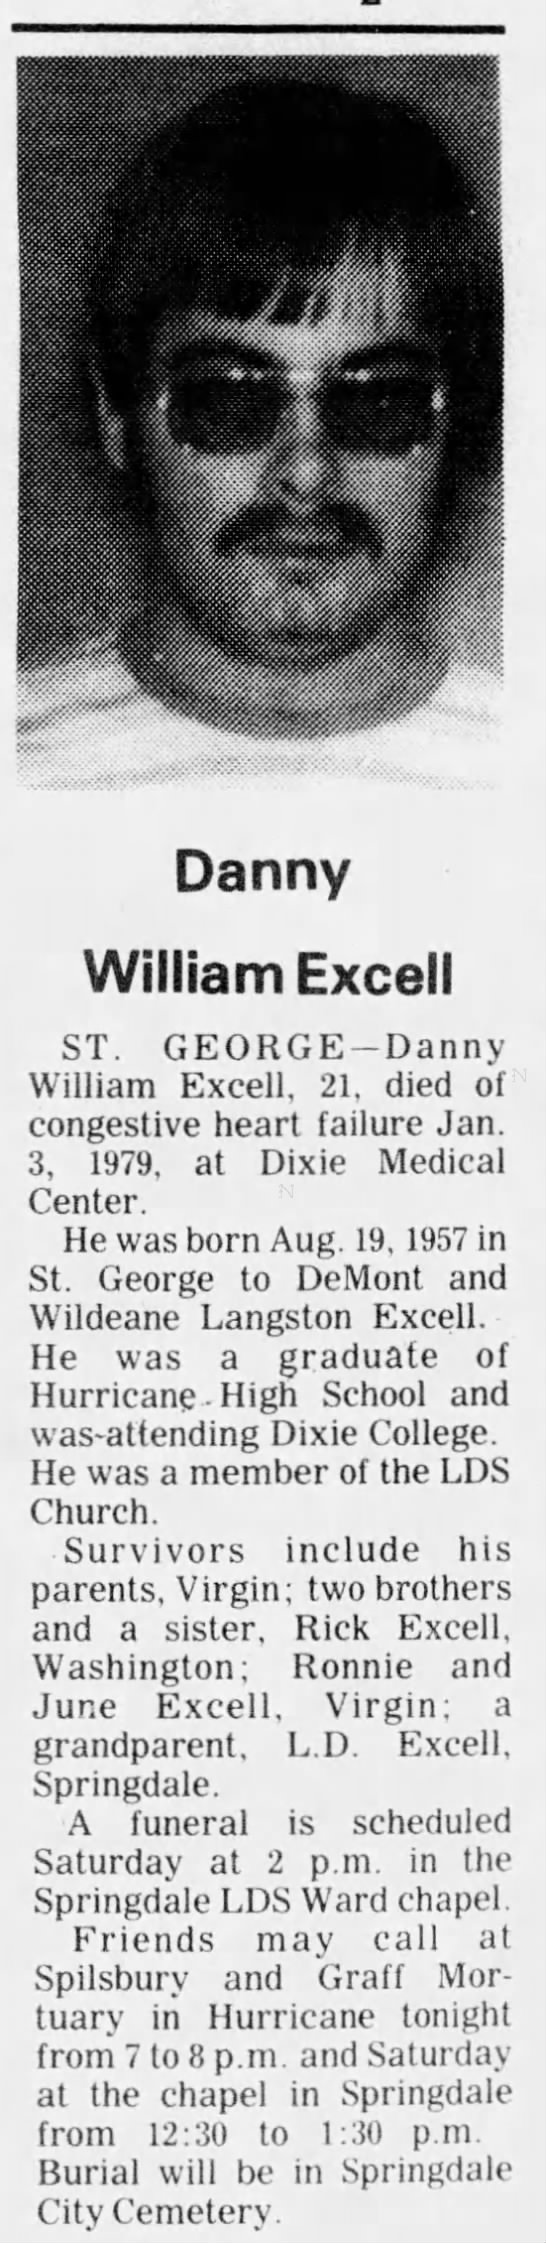 Danny William Excell; Obit.